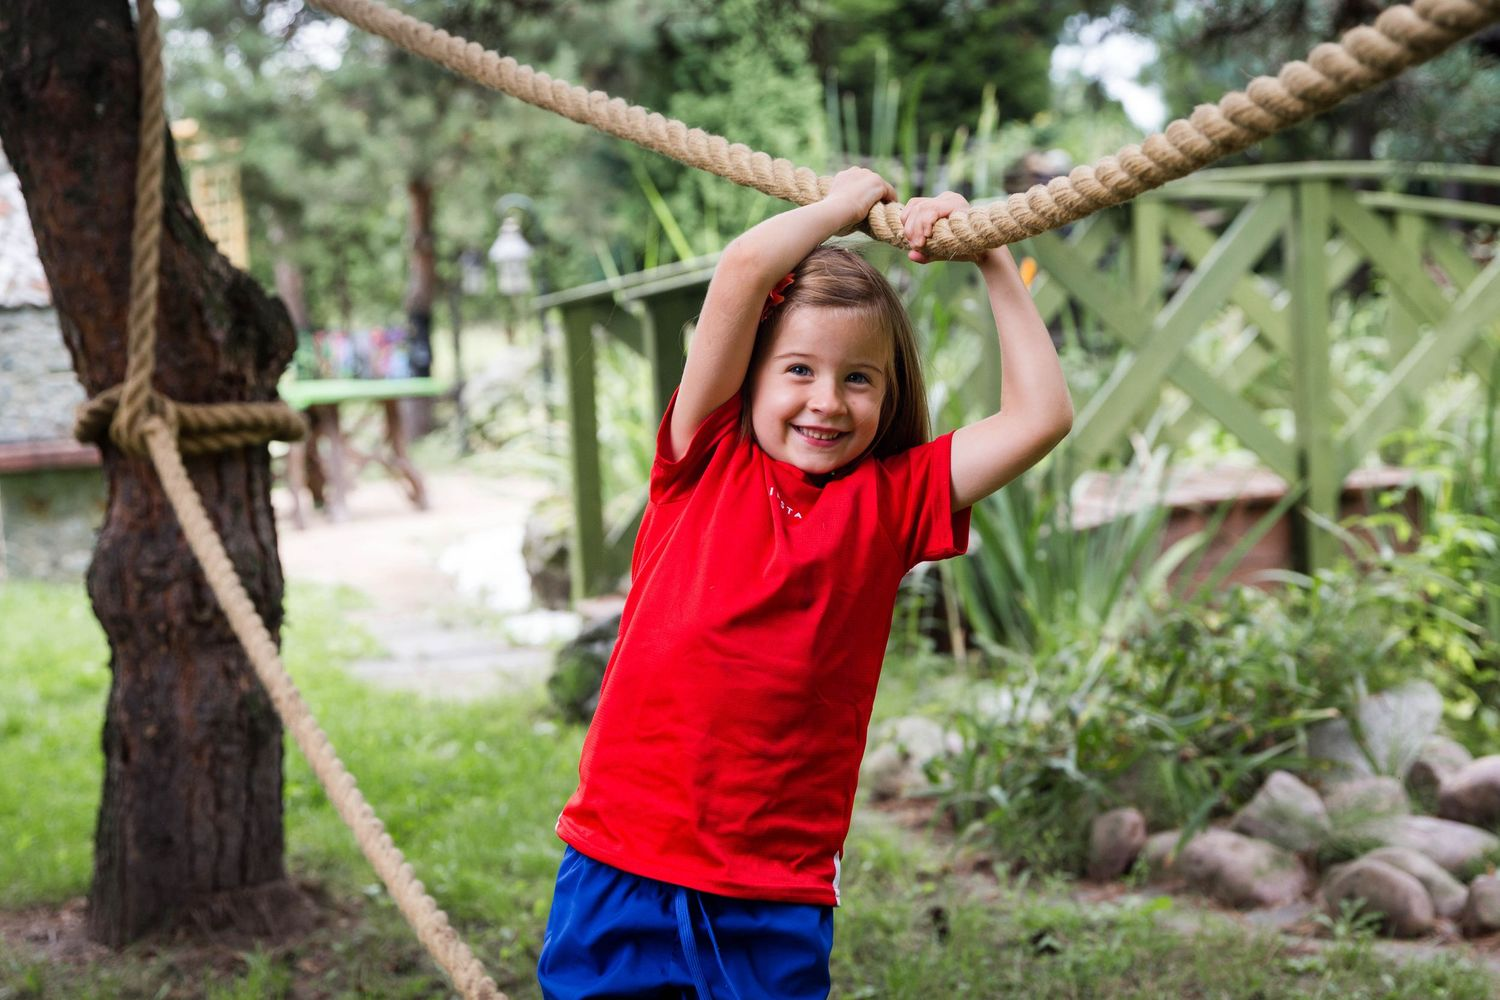 girl in red t-shirt smiling holding rope